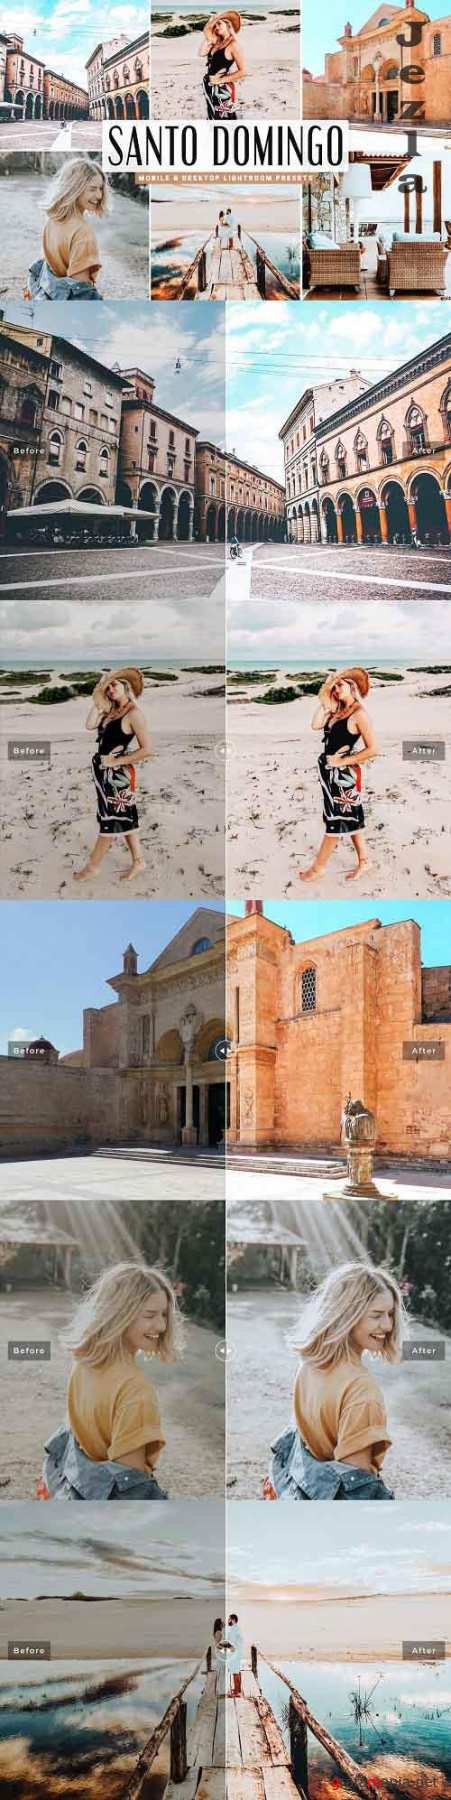 Santo Domingo Lightroom Presets Pack - 5015432 - Mobile & Desktop